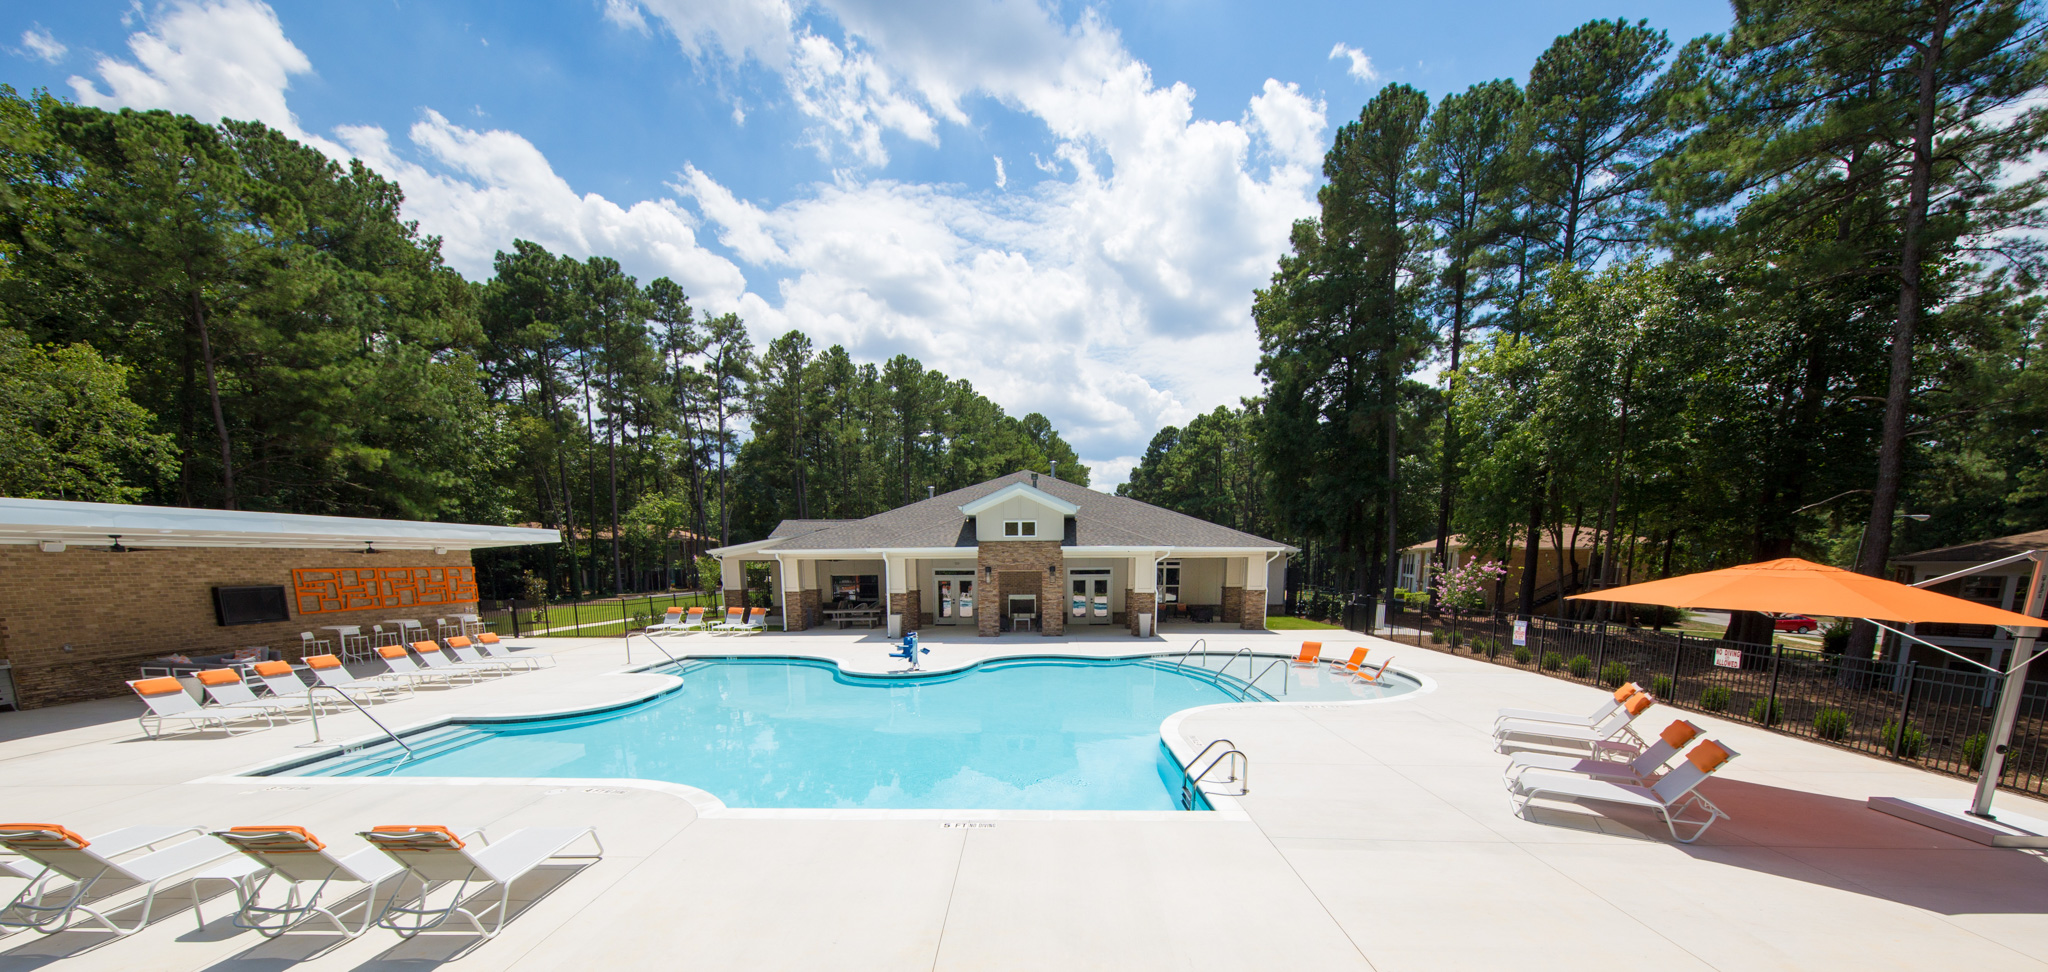 Pool - Shellbrook Apartments | Apartments in Raleigh NC Commercial Photo shoot and Virtual Tour